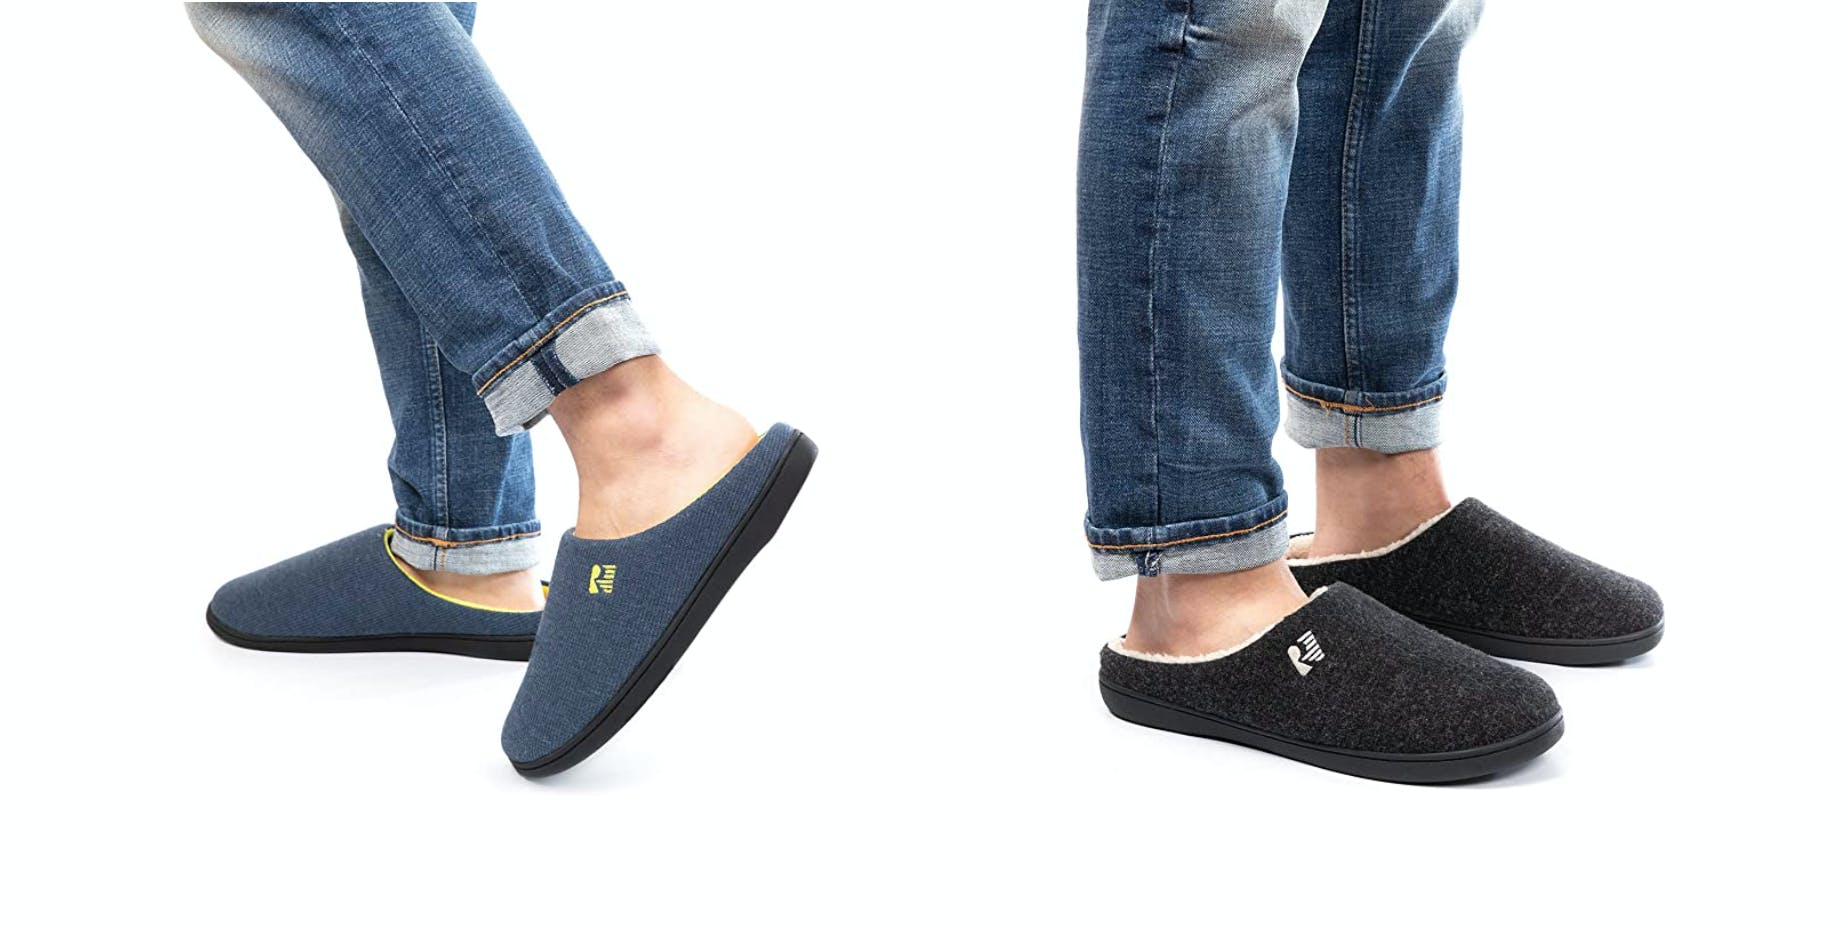 1 Best-Selling Men's Slippers, Only $18